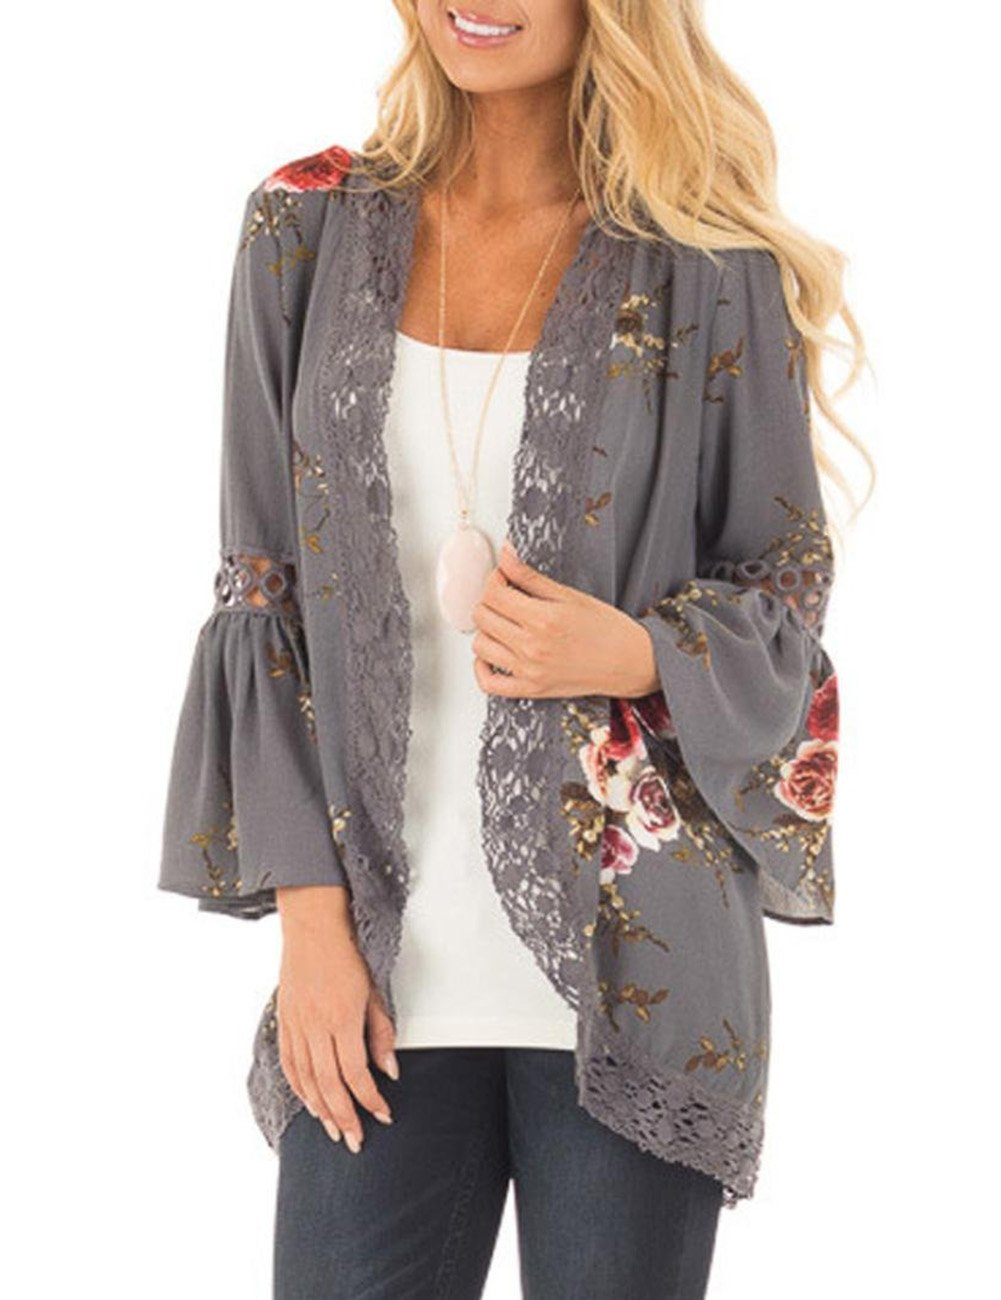 Yiwa Stylish Women Printed Lace Cardigan Mandarin-Sleeve Splicing Tops Gift Gray M